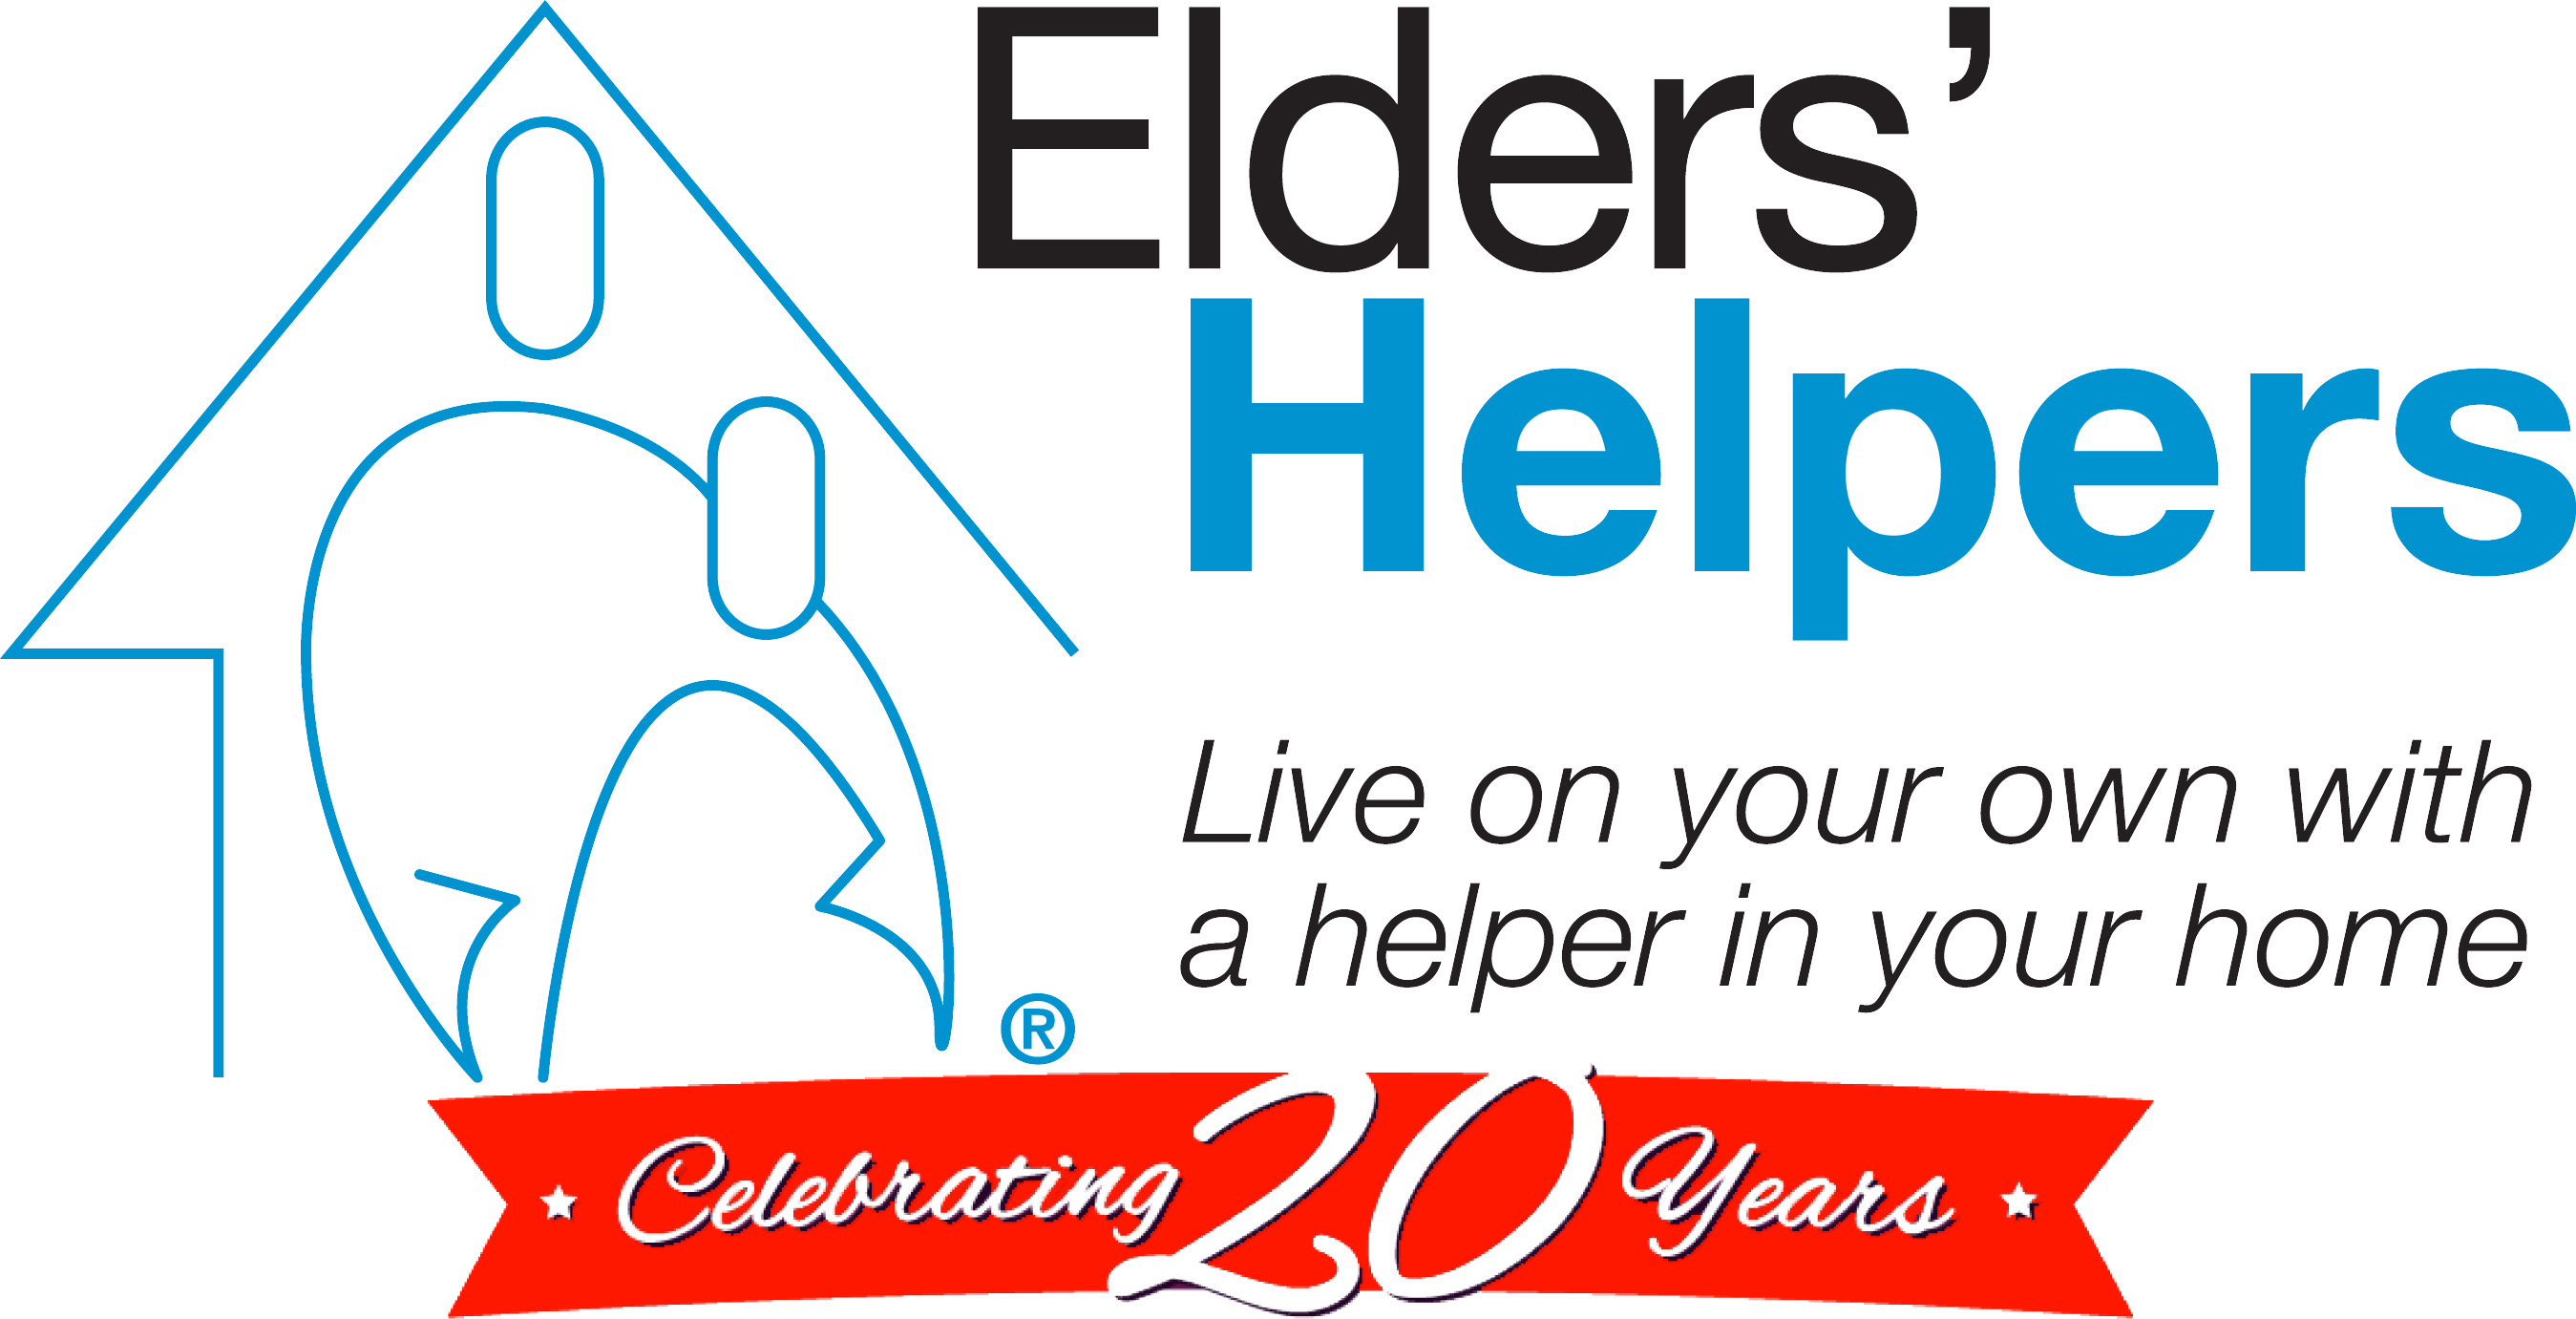 Elders' Helpers Celebrating 20th Year as Local, Family-Owned Home Health Care Agency for Seniors